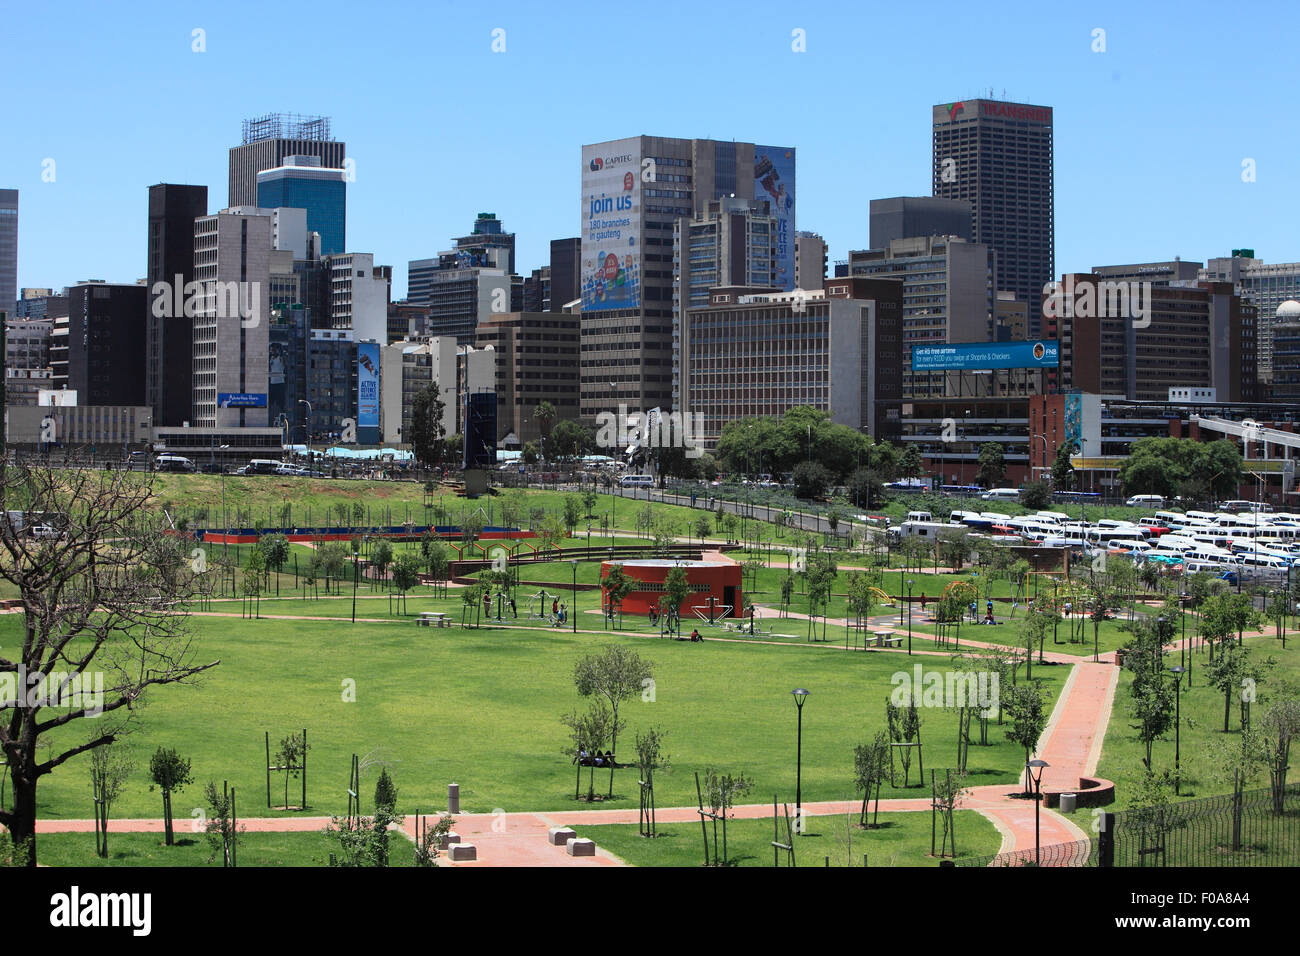 South Africa, Johannesburg. View from Joburg's first tour bus of the inner city CBD and park near Newtown. - Stock Image